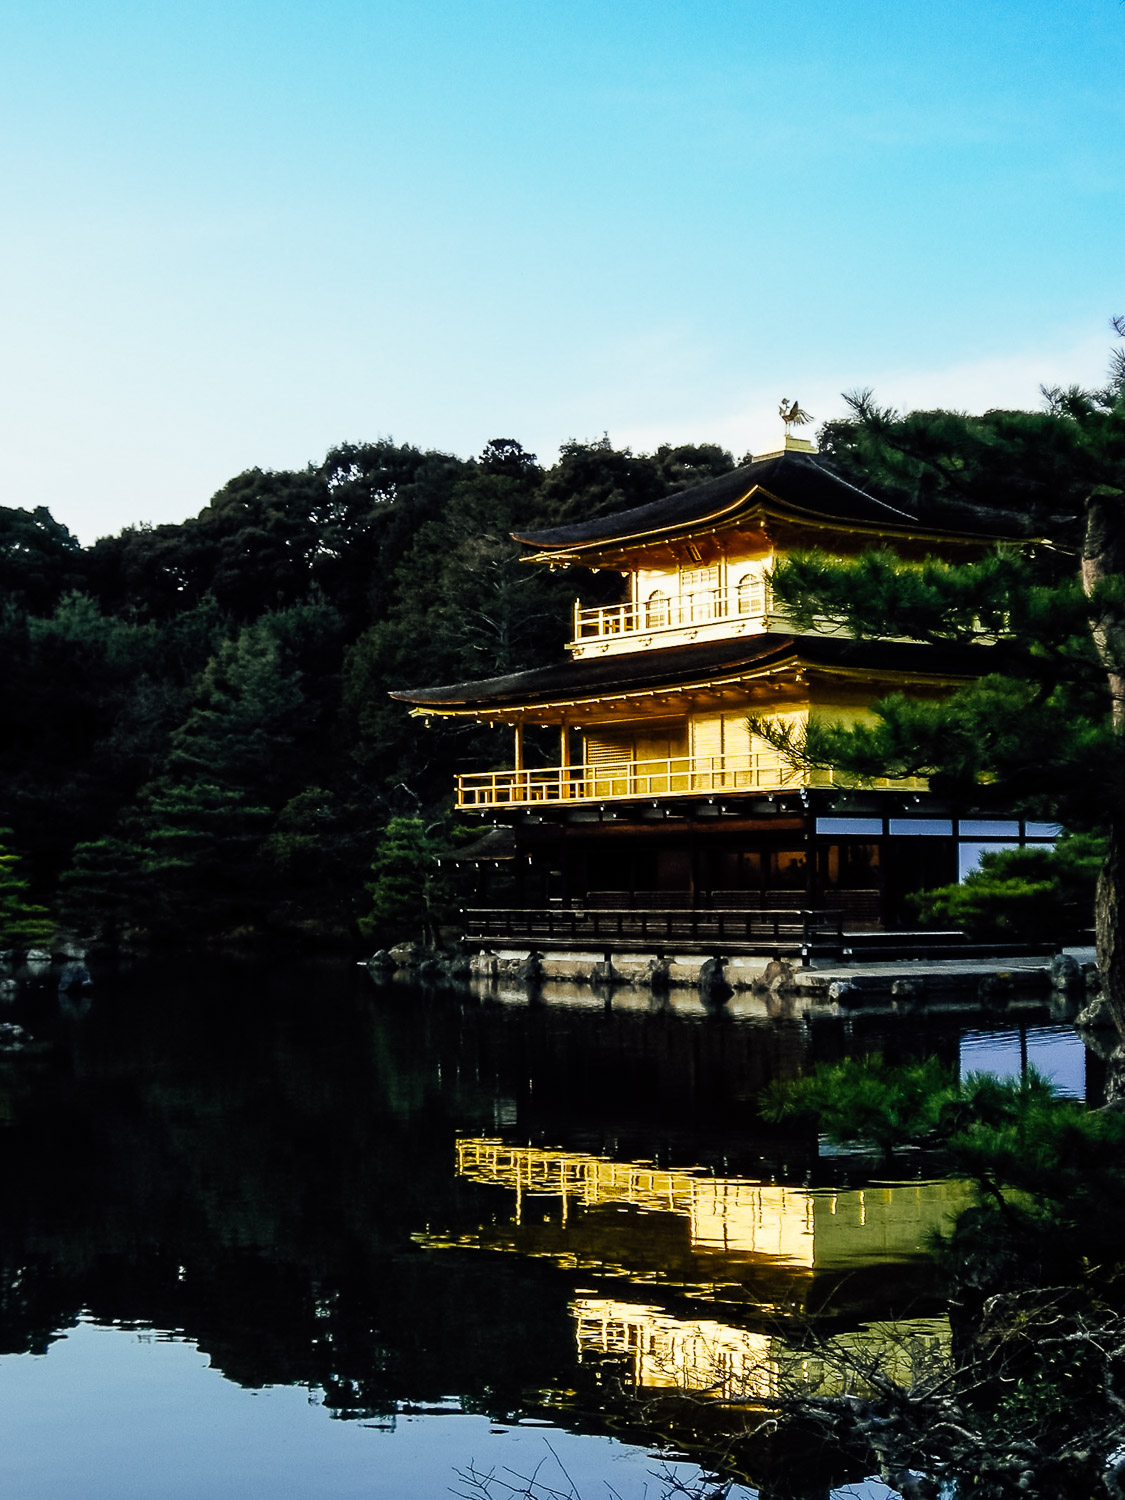 Temple-Japan-Golden-Tradition-Architecture-Travel-Kyoto-Durazo-Photography